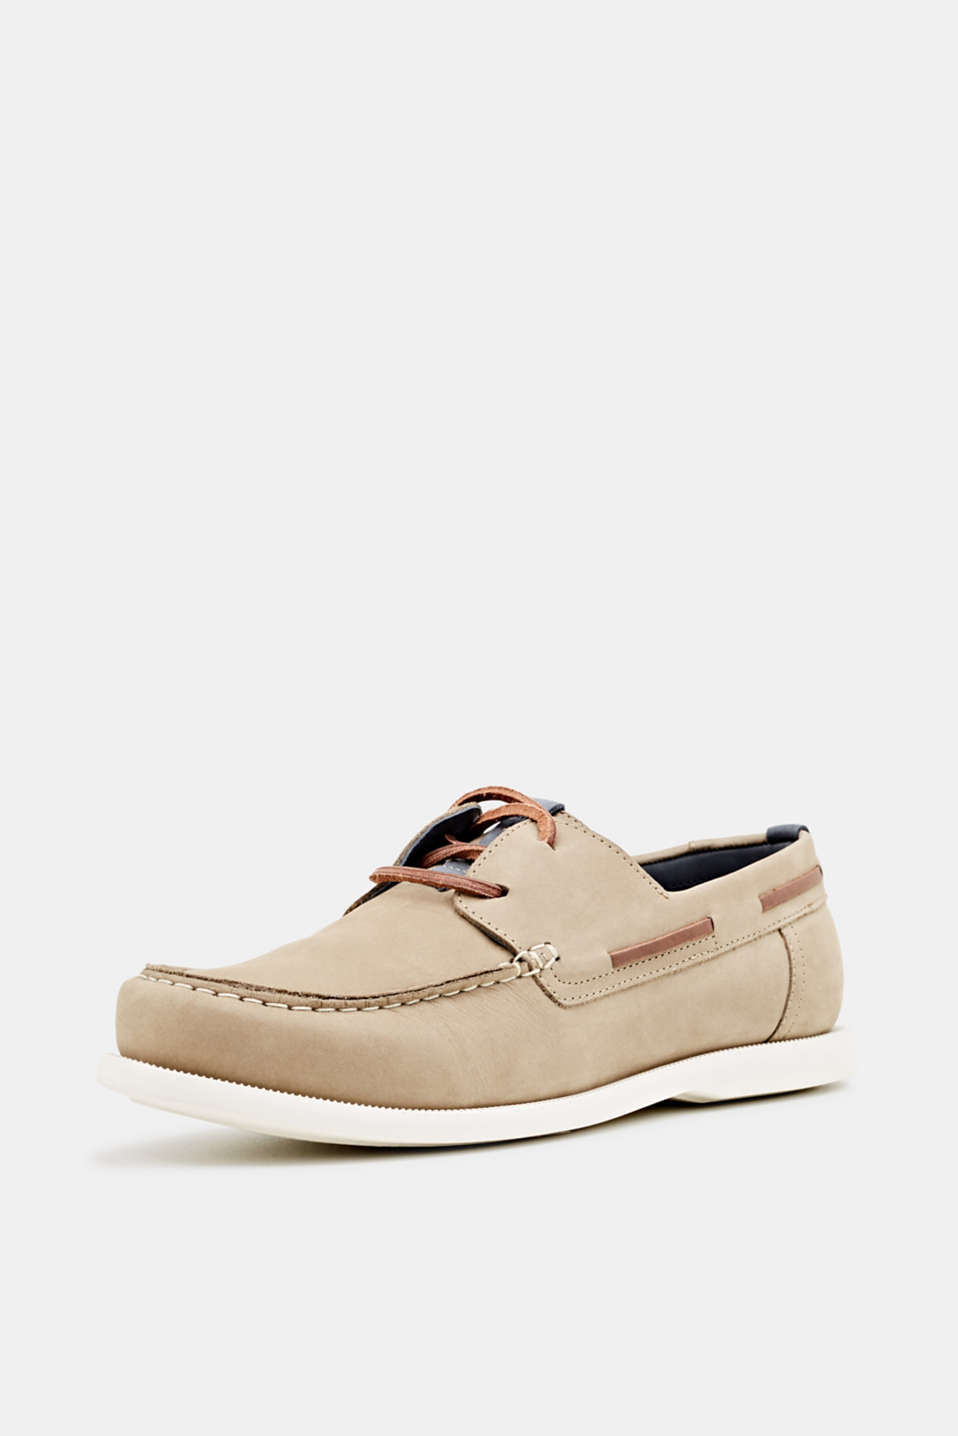 Leather boat shoes, BEIGE, detail image number 2